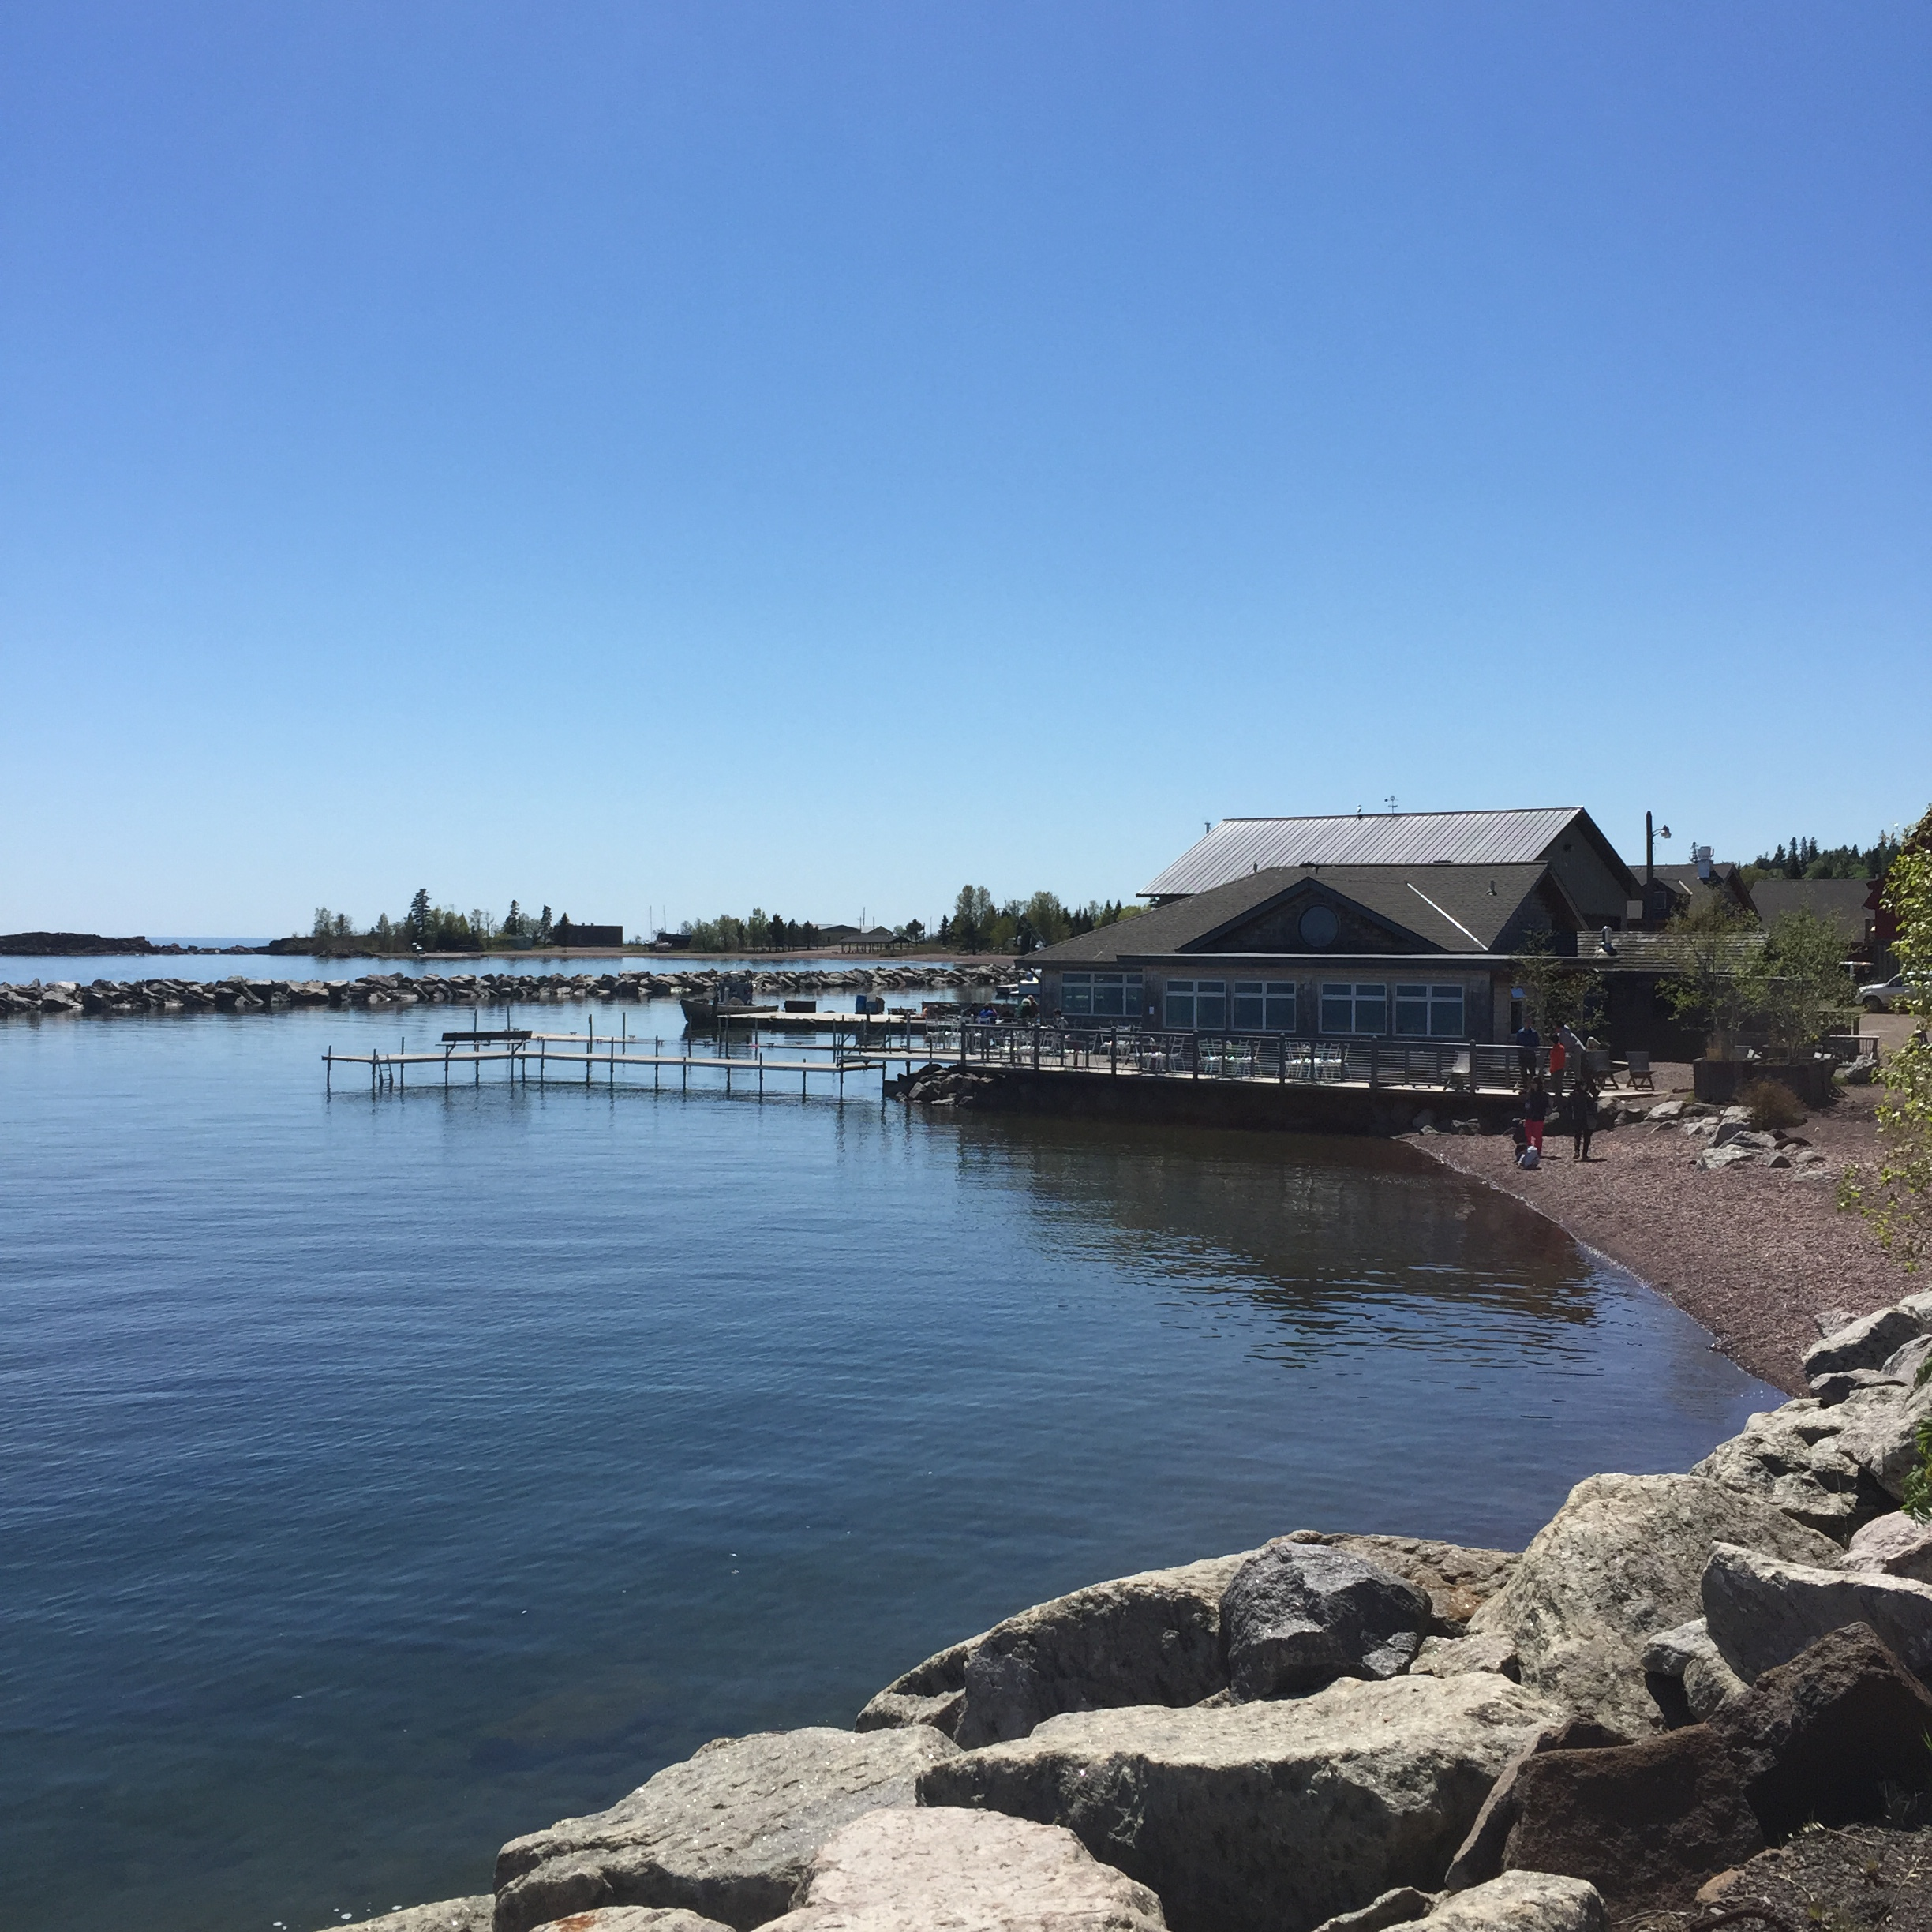 Grand Marais harbor with the Angry Trout restaurant